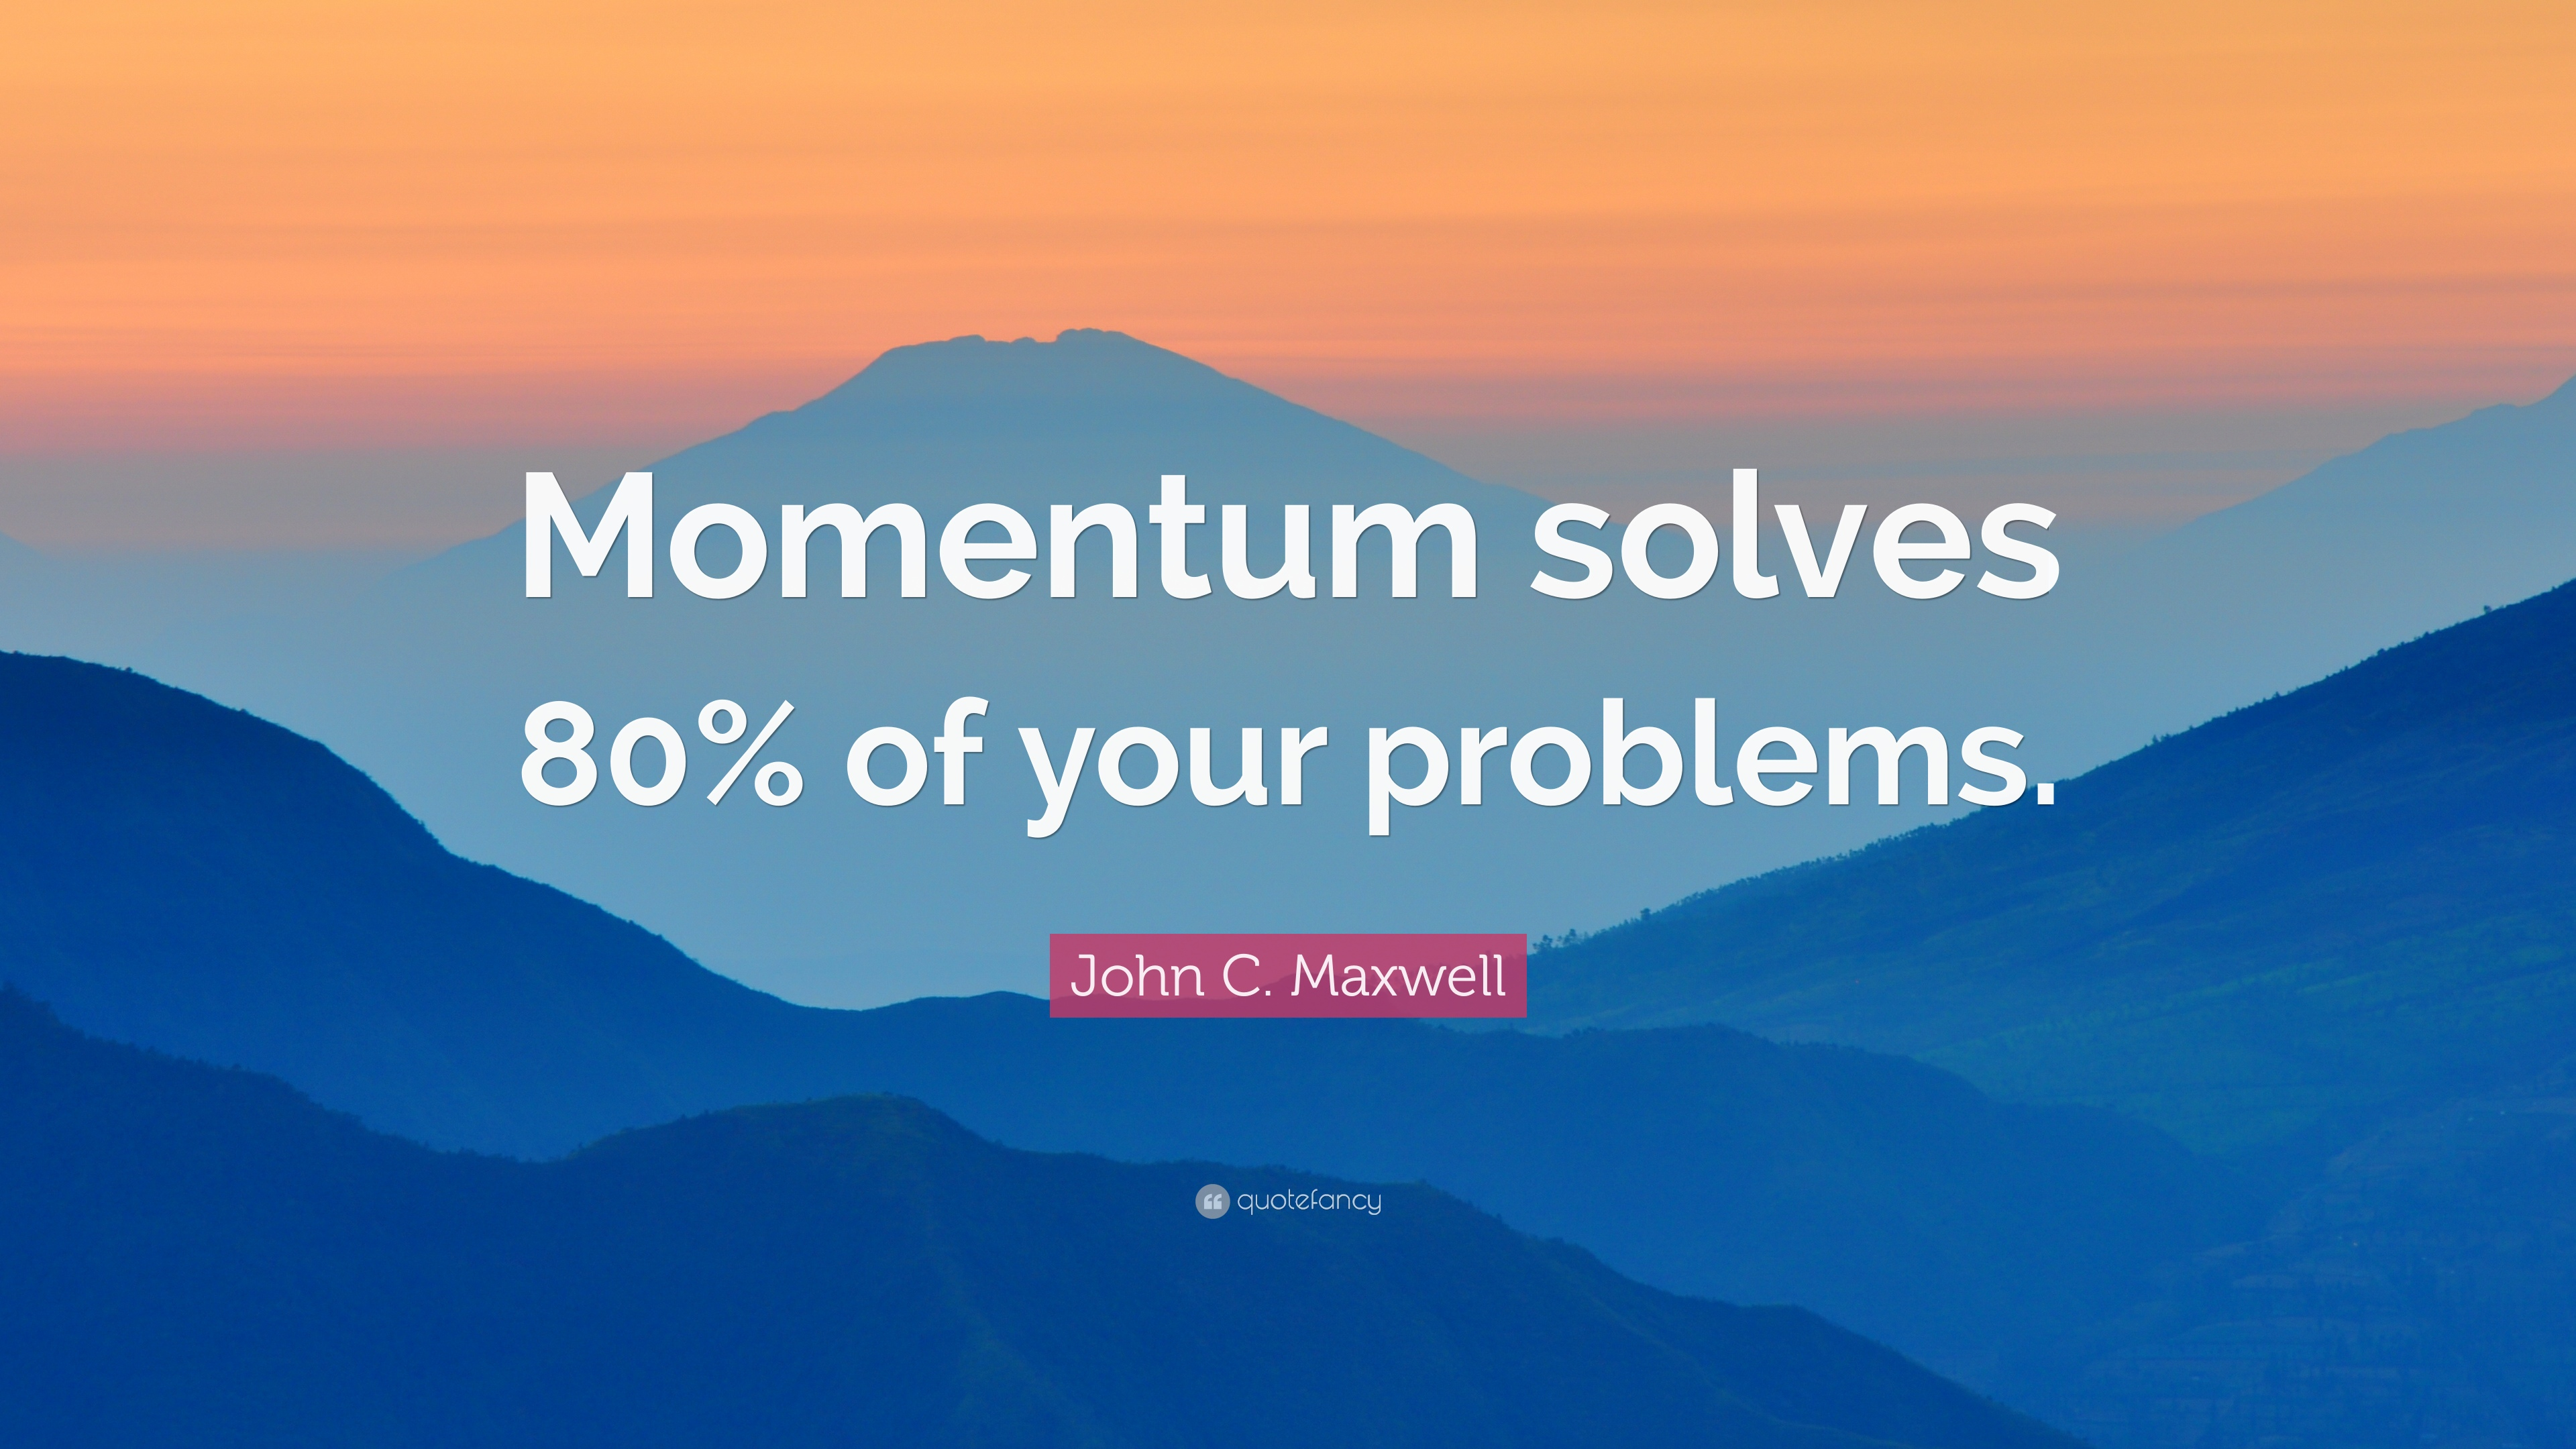 Momentum Quotes (40 wallpapers) - Quotefancy